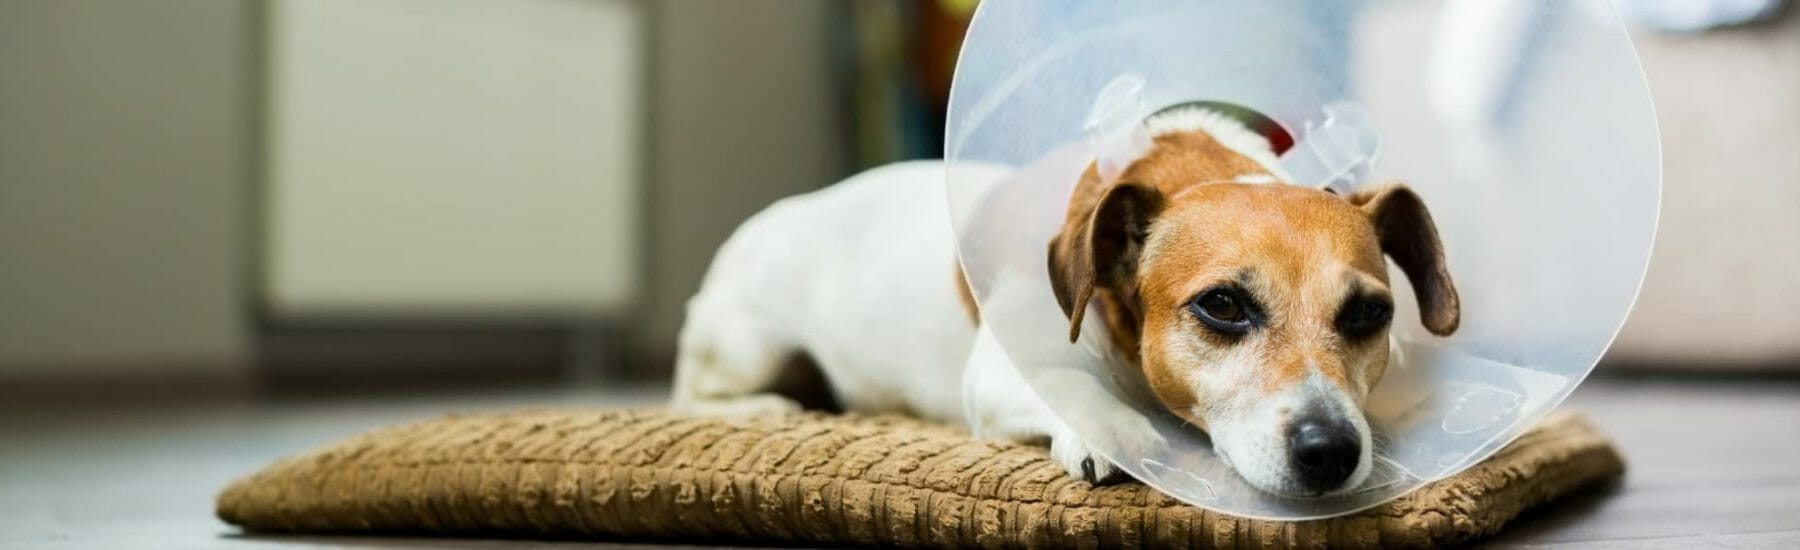 White and brown dog with cone on their head